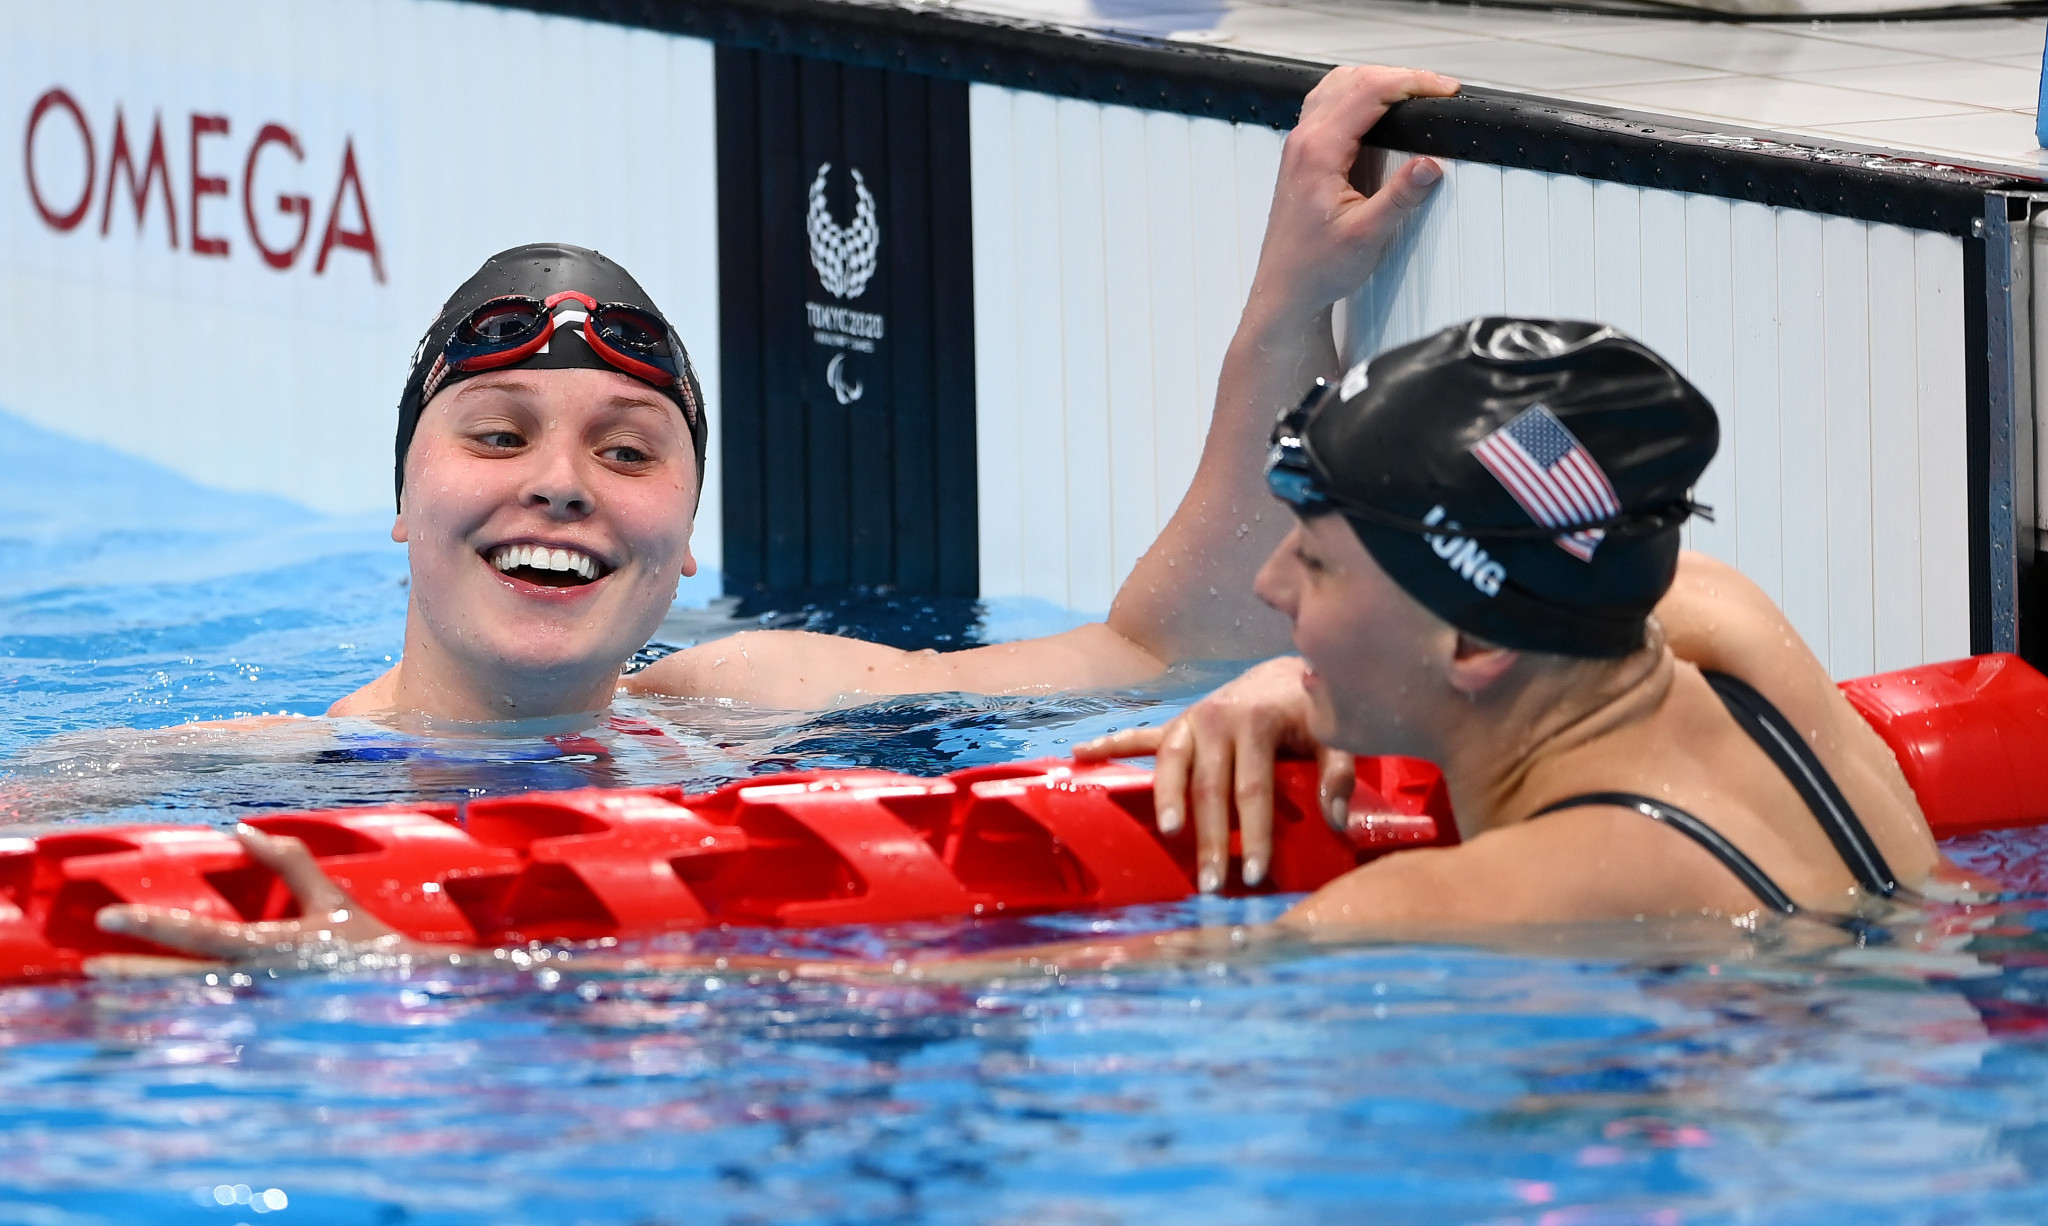 Stickney topples Long to cap remarkable story as Pascoe captures 10th Paralympic crown